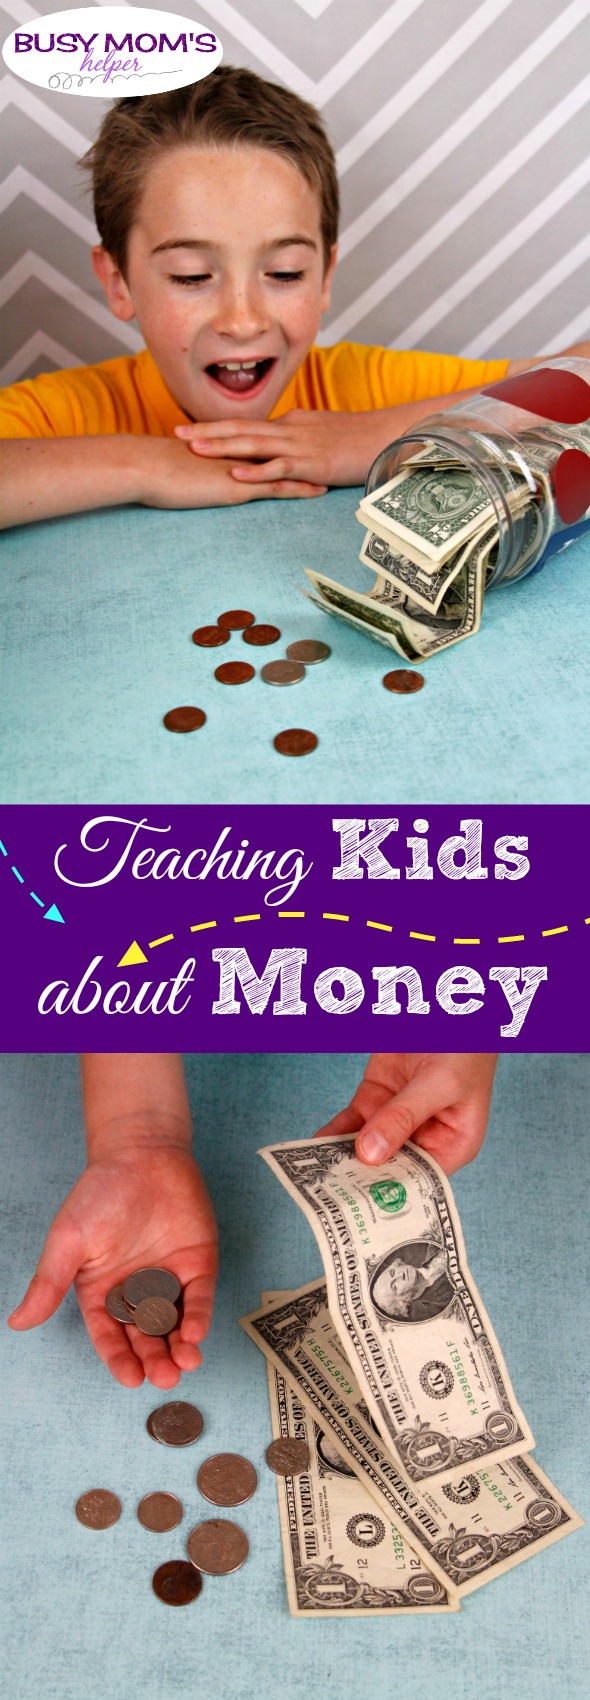 Kids and Money: Teaching our kids good financial skills when they're young for success when they're older! #parenting #kids #money #budget #moneyskills #finances #kidmoney #allowance